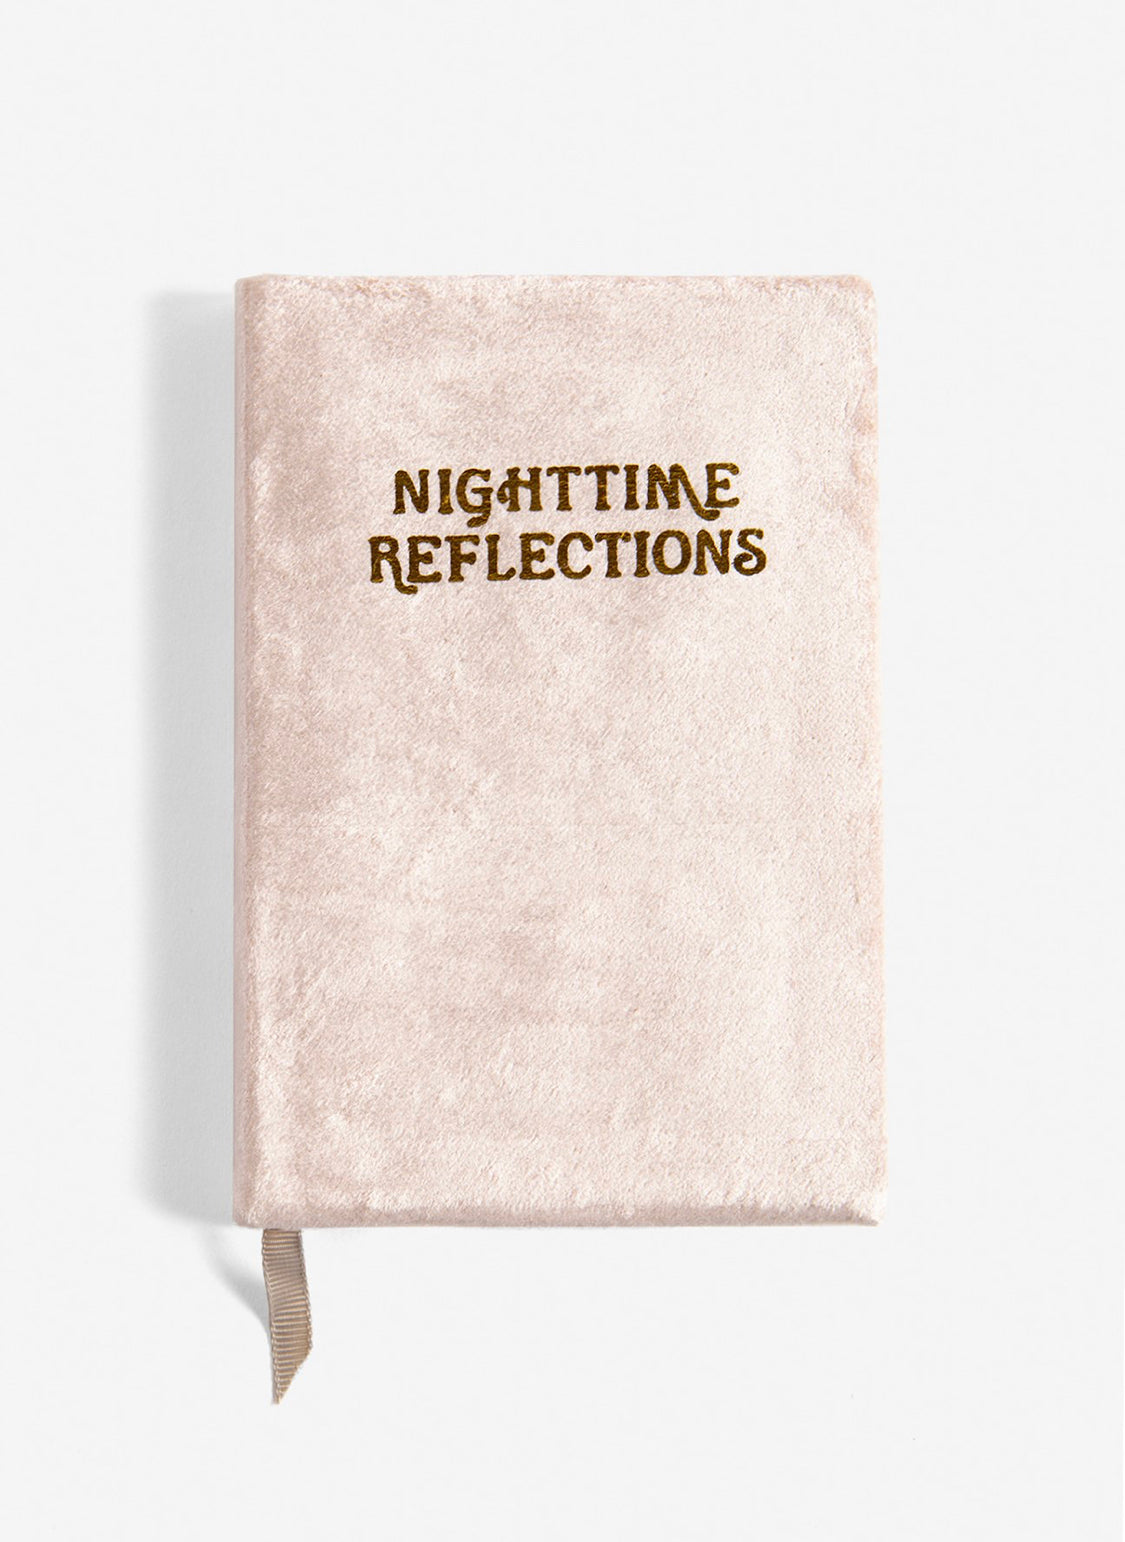 Nighttime Reflections Guided Journal || BLUSH